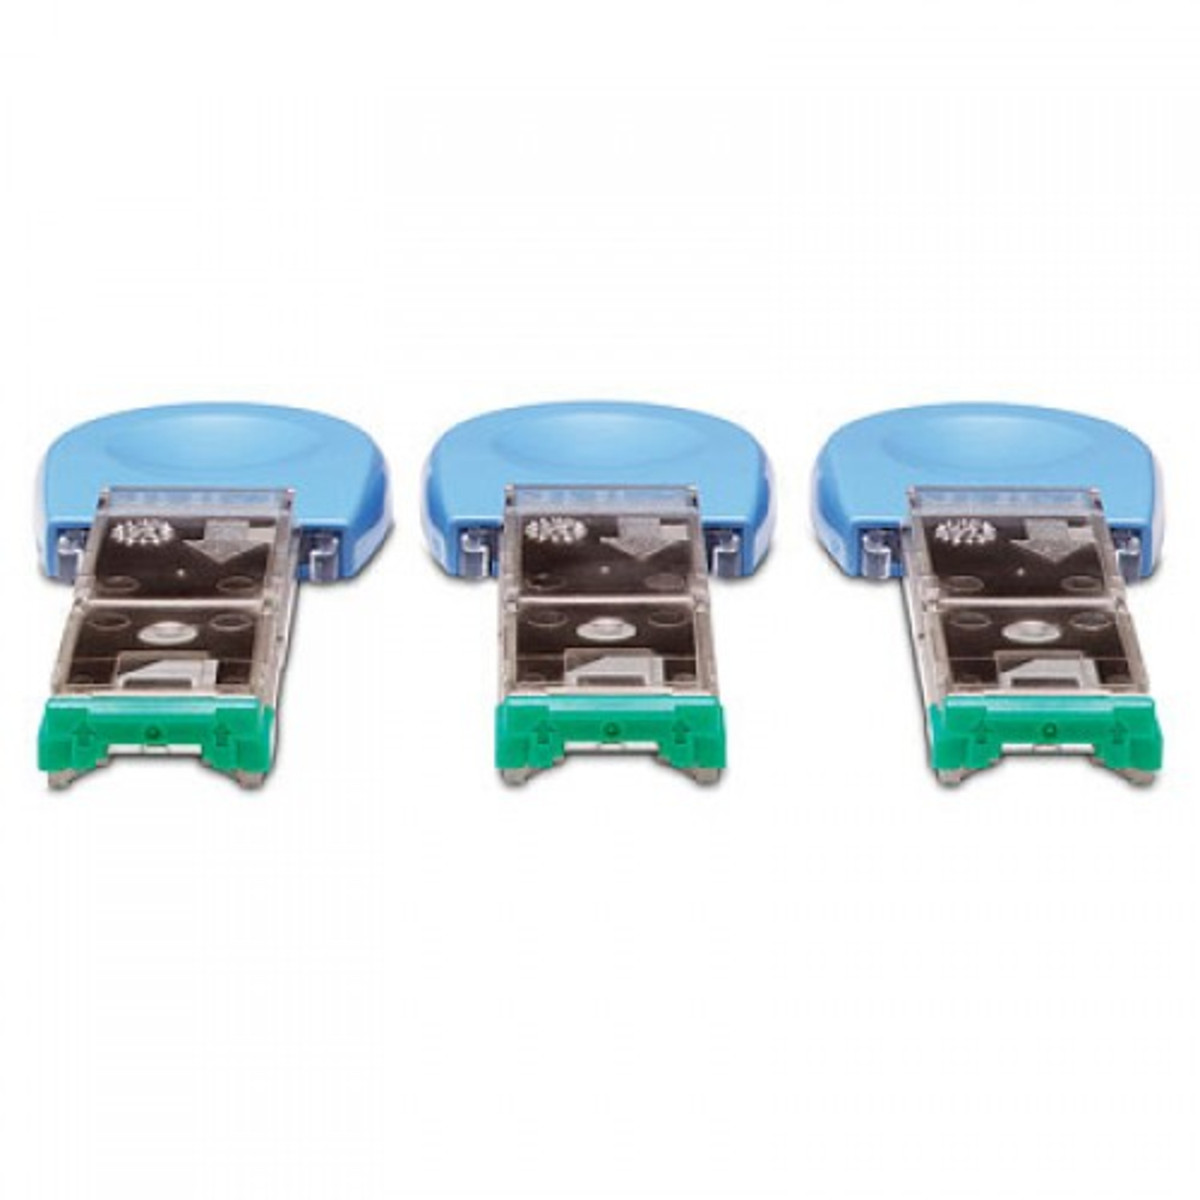 HP Staple Cartridge for the Booklet Maker/Finisher (CC383A)